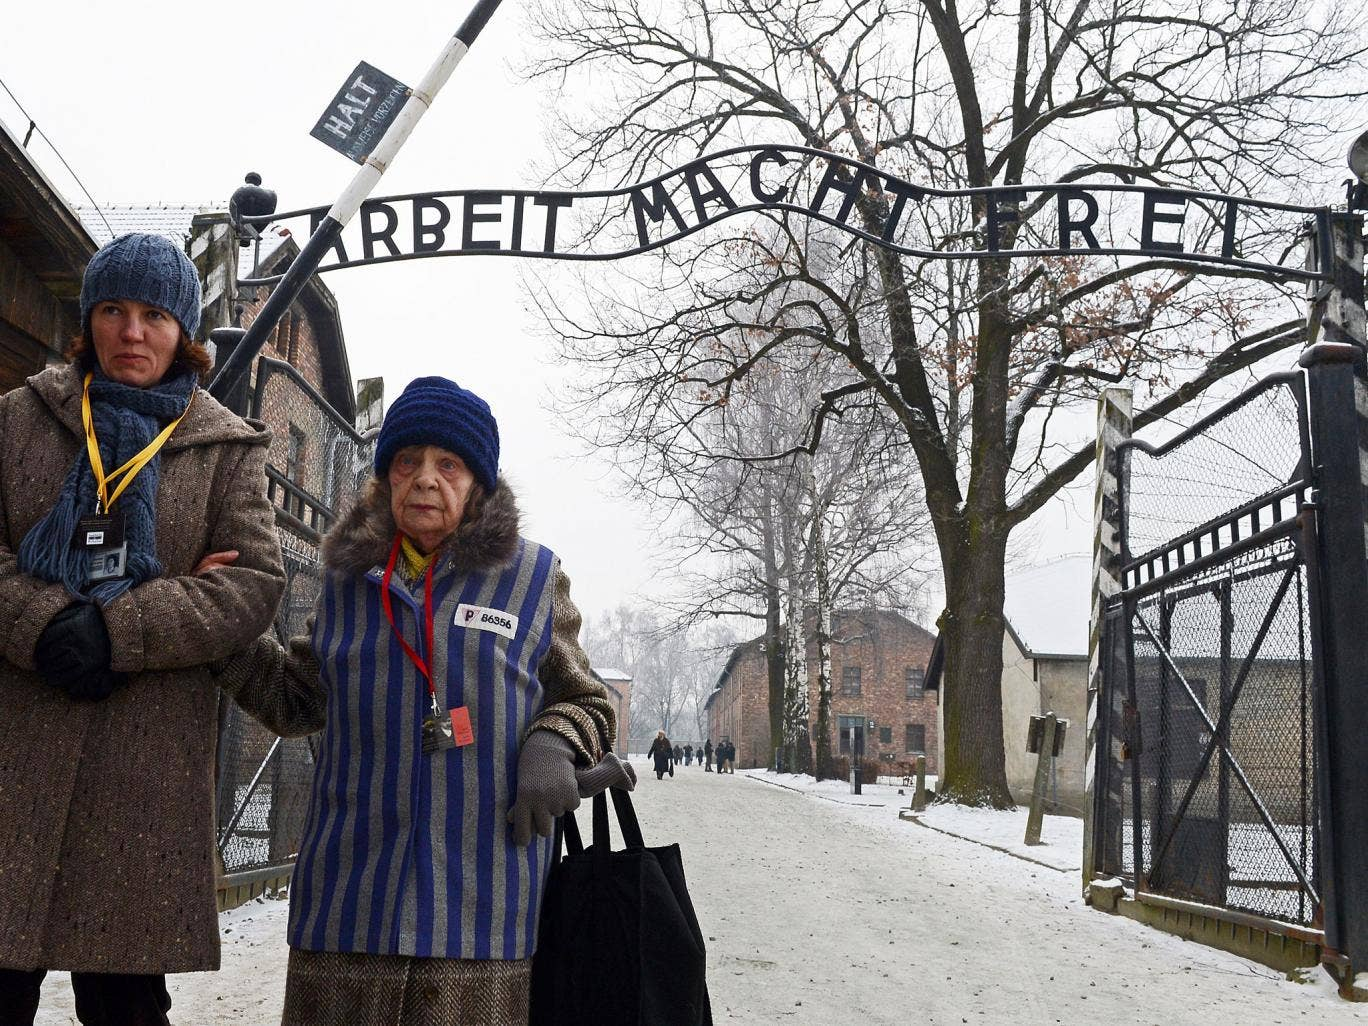 Former concentration camp prisoners attend a ceremony at the memorial site of the former Nazi concentration camp Auschwitz-Birkenau in Oswiecim, Poland, on Holocaust Day, January 27, 2014. The ceremony took place 69 years after the liberation of the death